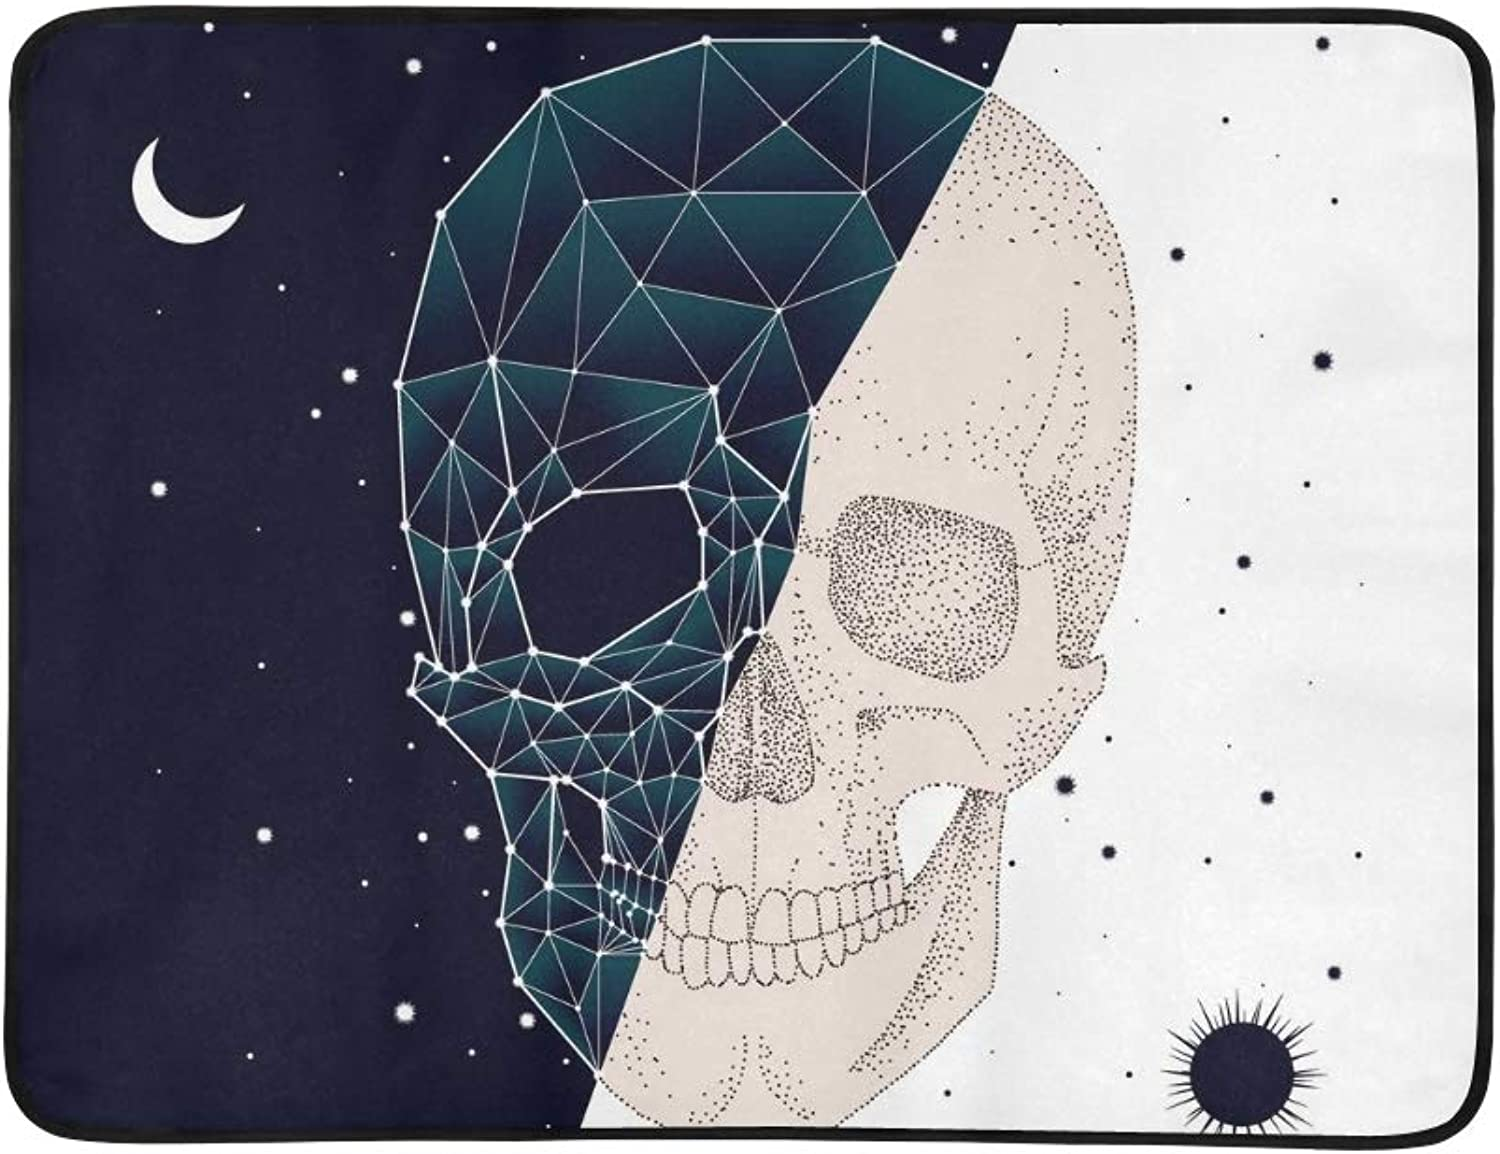 Constellation Skull Contrast Portable and Foldable Blanket Mat 60x78 Inch Handy Mat for Camping Picnic Beach Indoor Outdoor Travel